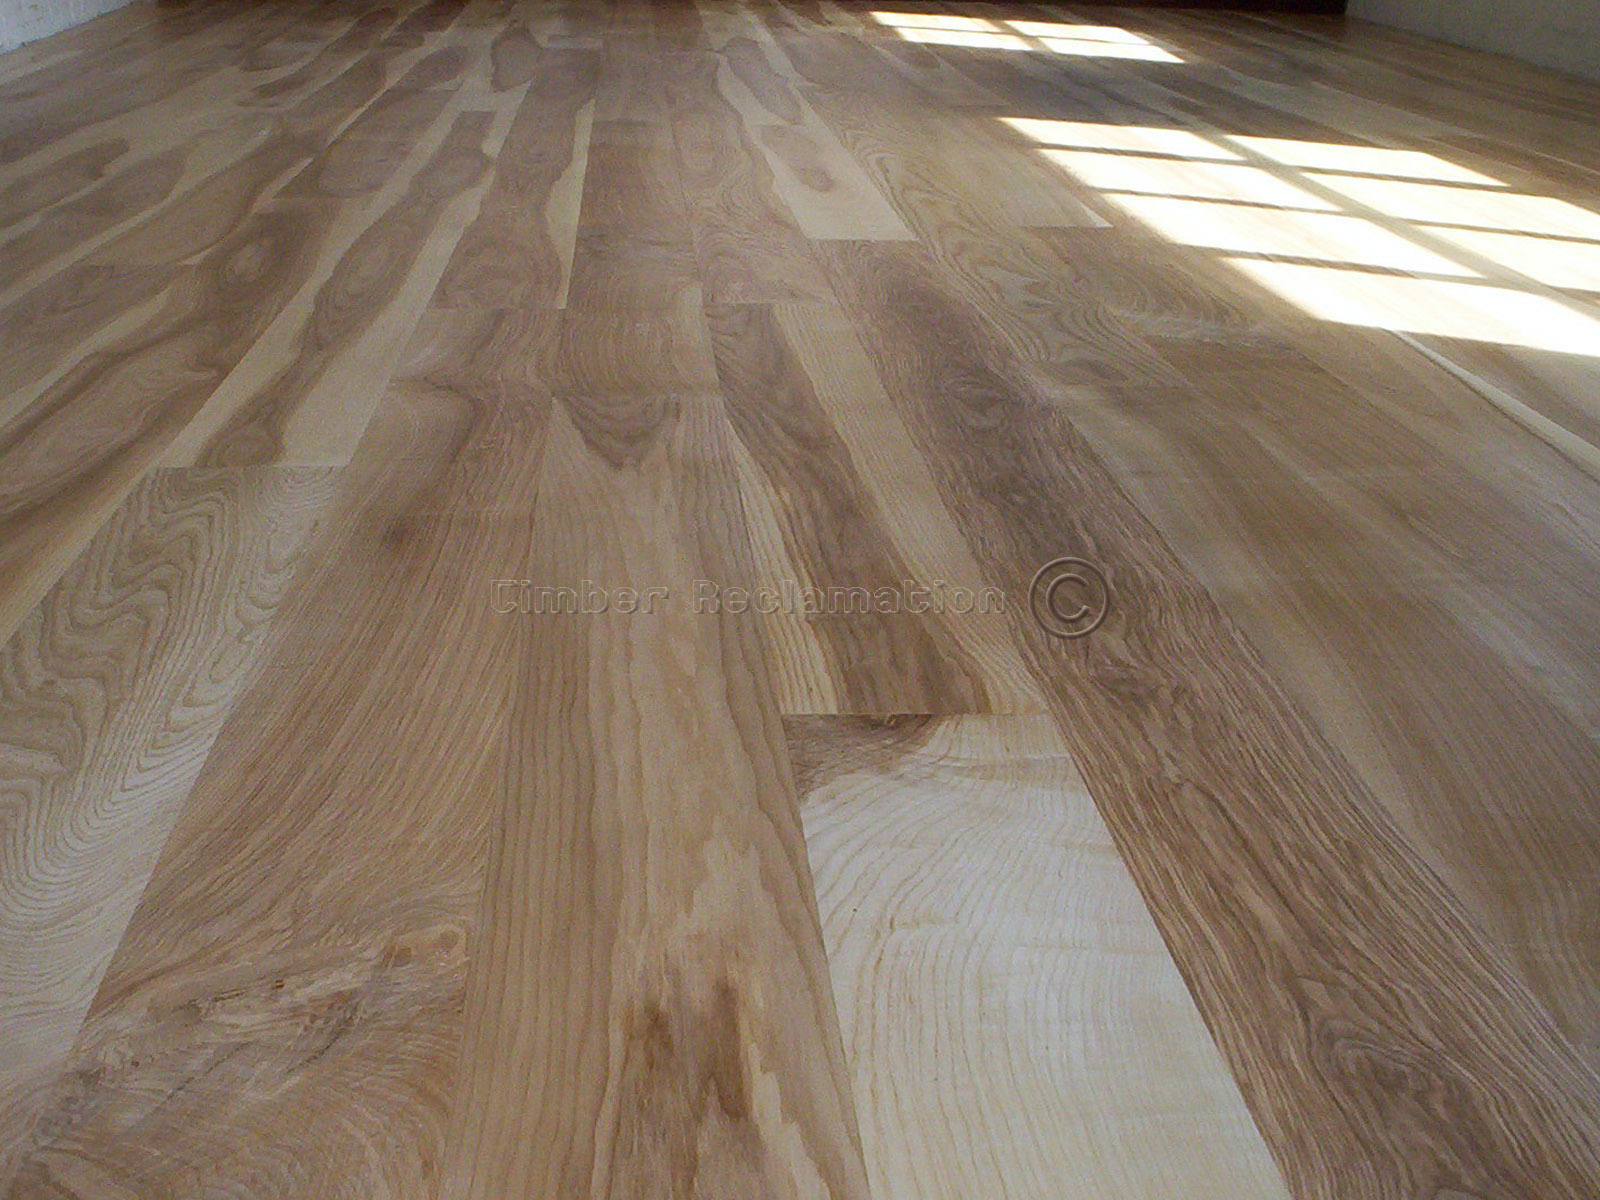 Reclaimed English Ash Solid Wood Flooring